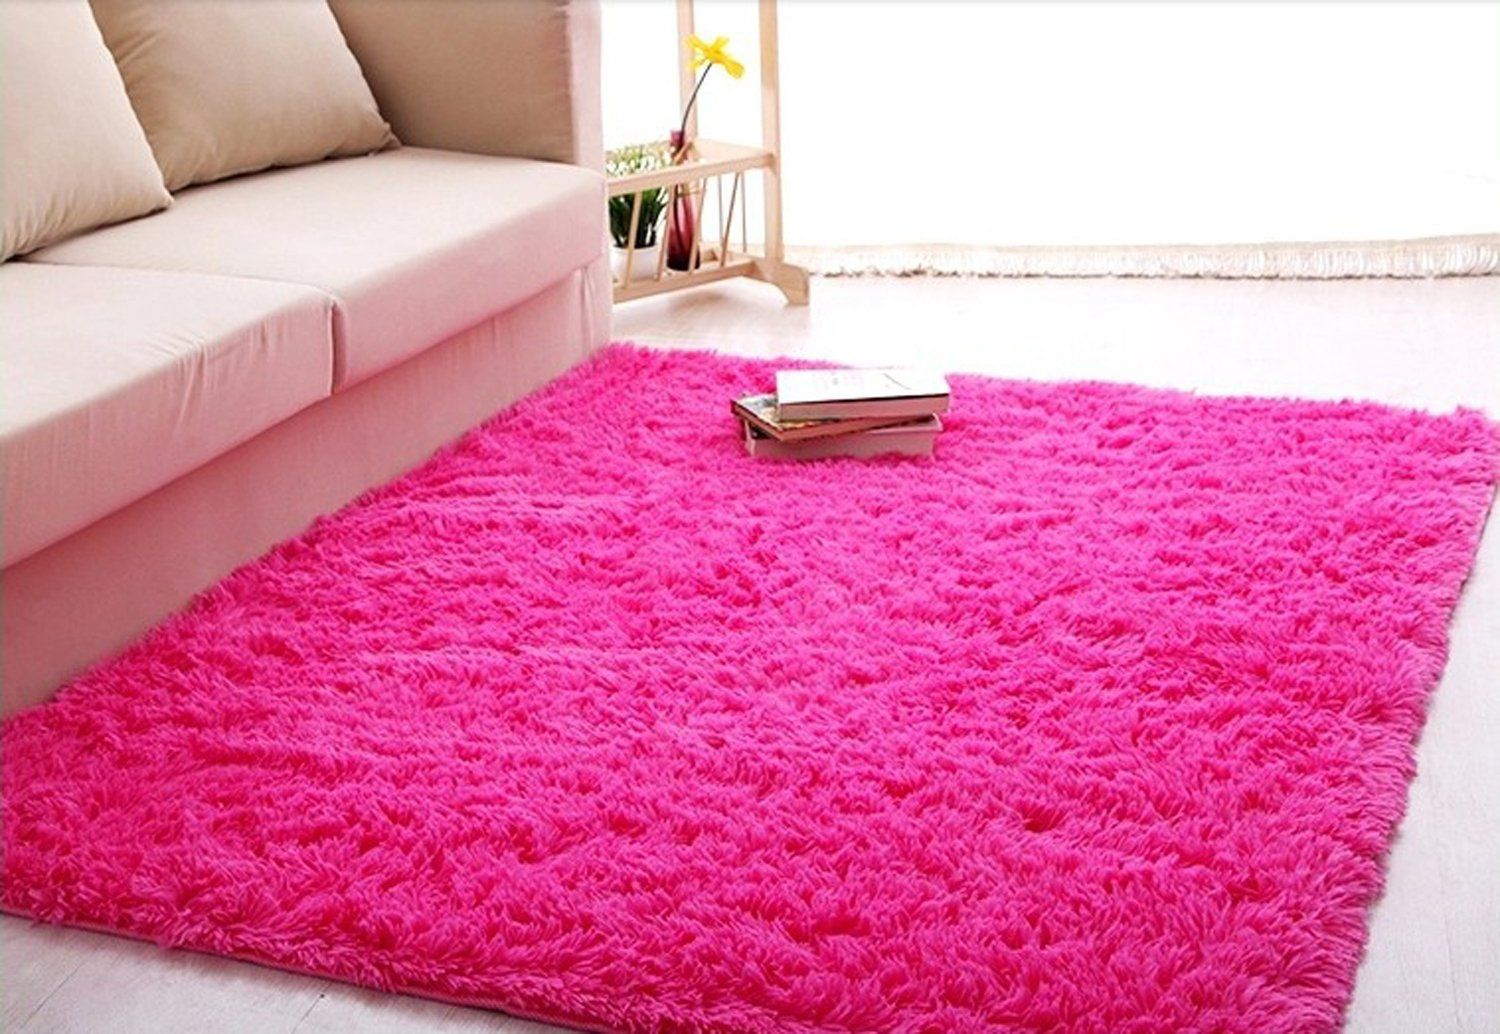 2019 shaggy rugs for kids room bedroom interior decorating check rh pinterest com Shaggy Rugs in Rooms Silver Shaggy Rug